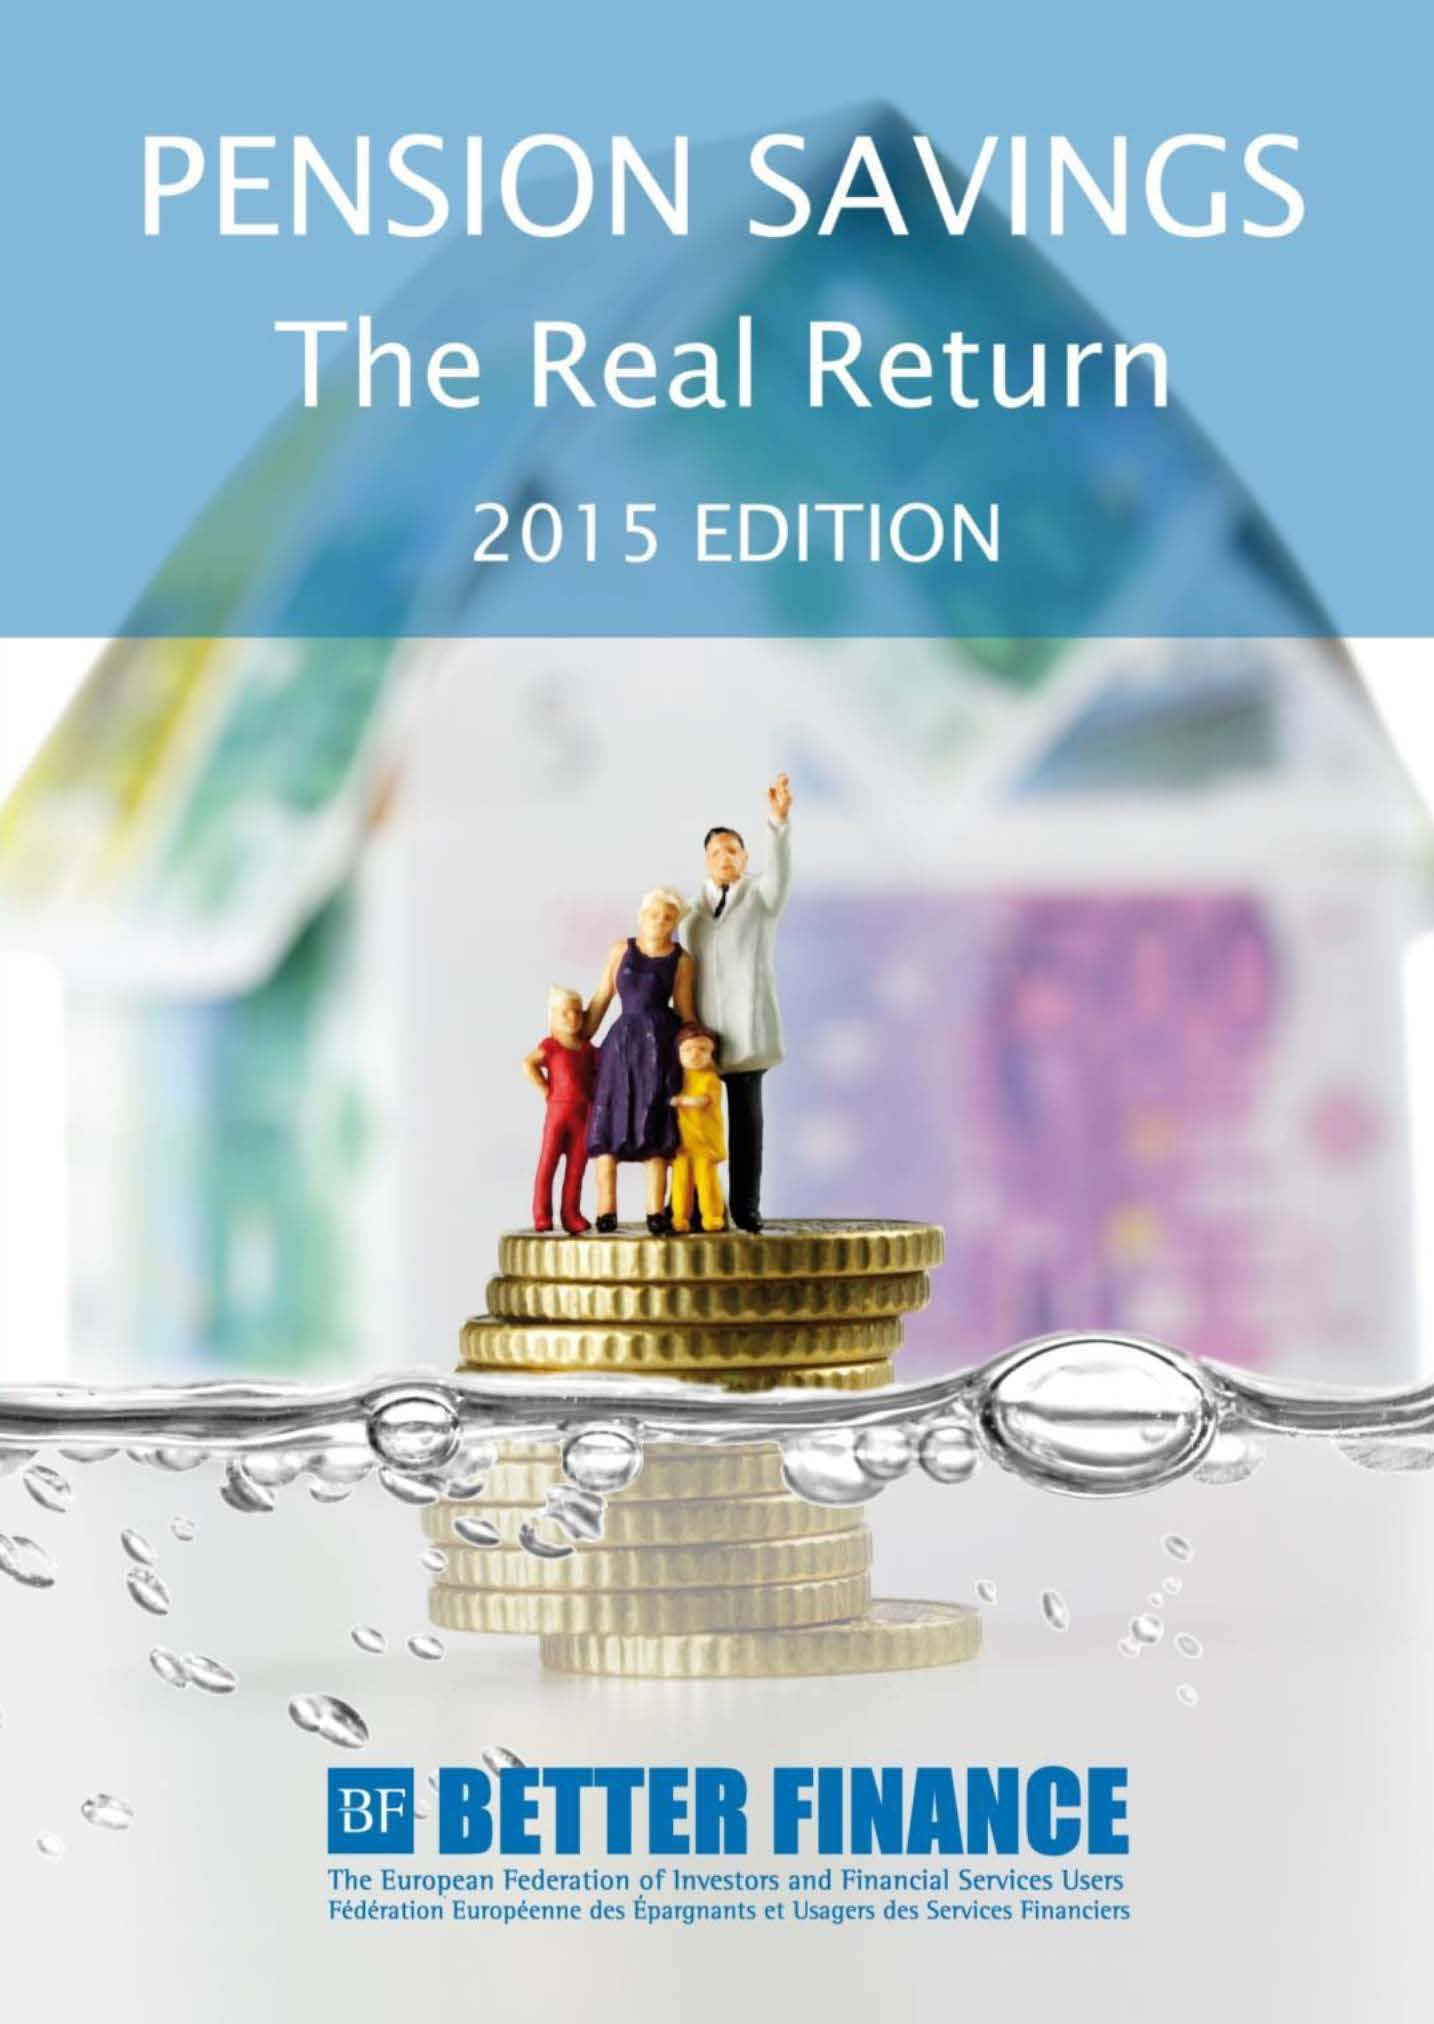 Pension Report_2015_Edition_For_Web_01_Page_001